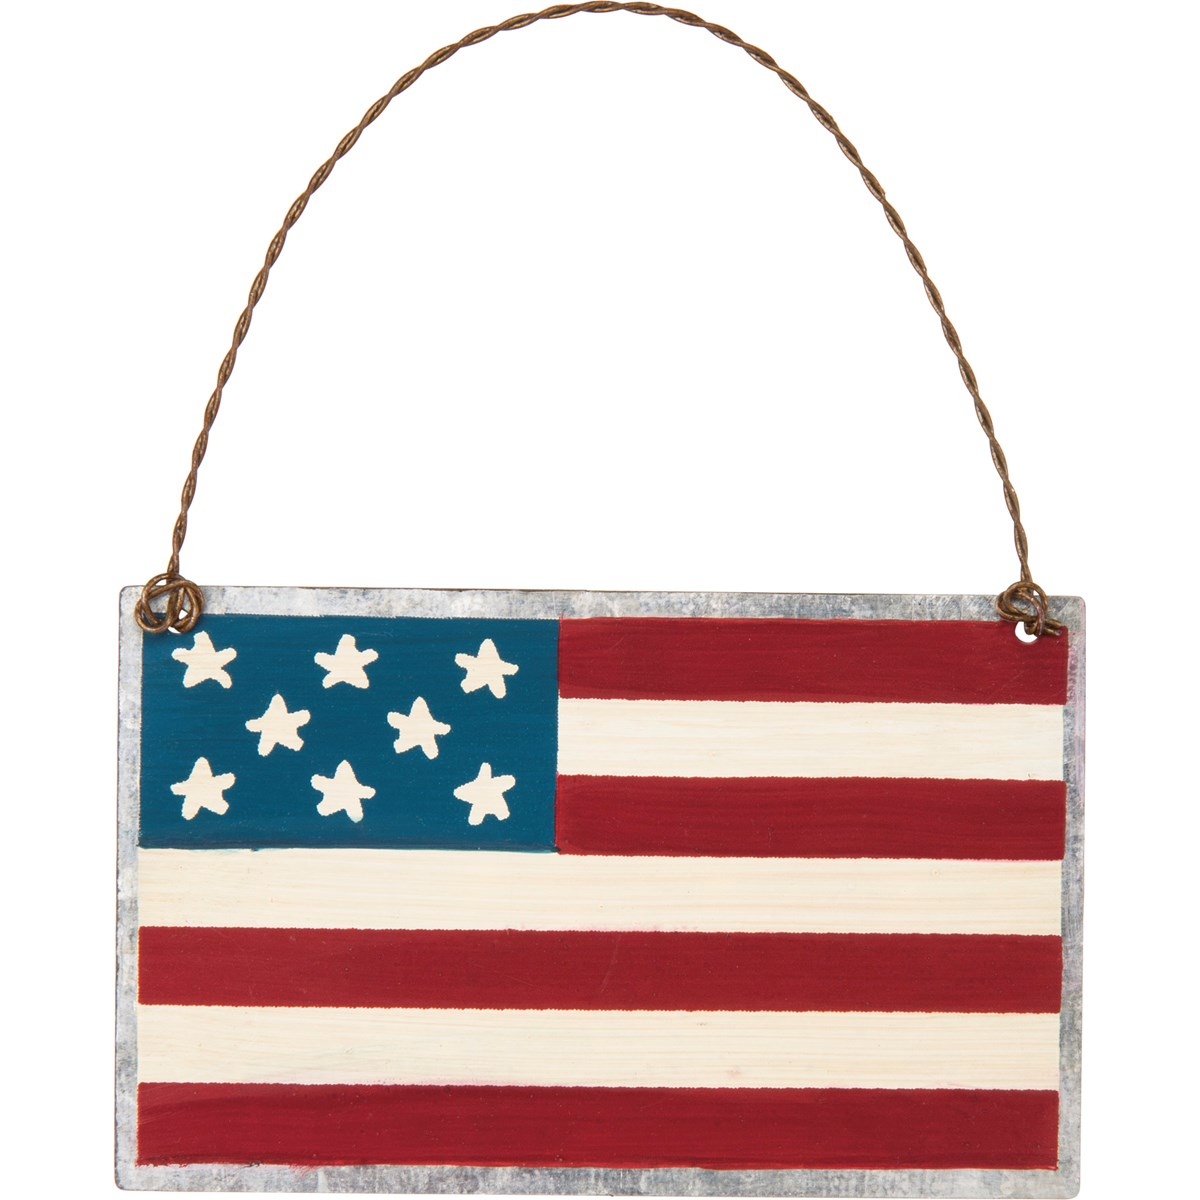 "Ornament - American Flag - 4"" x 2.50"" - Metal, Wire"